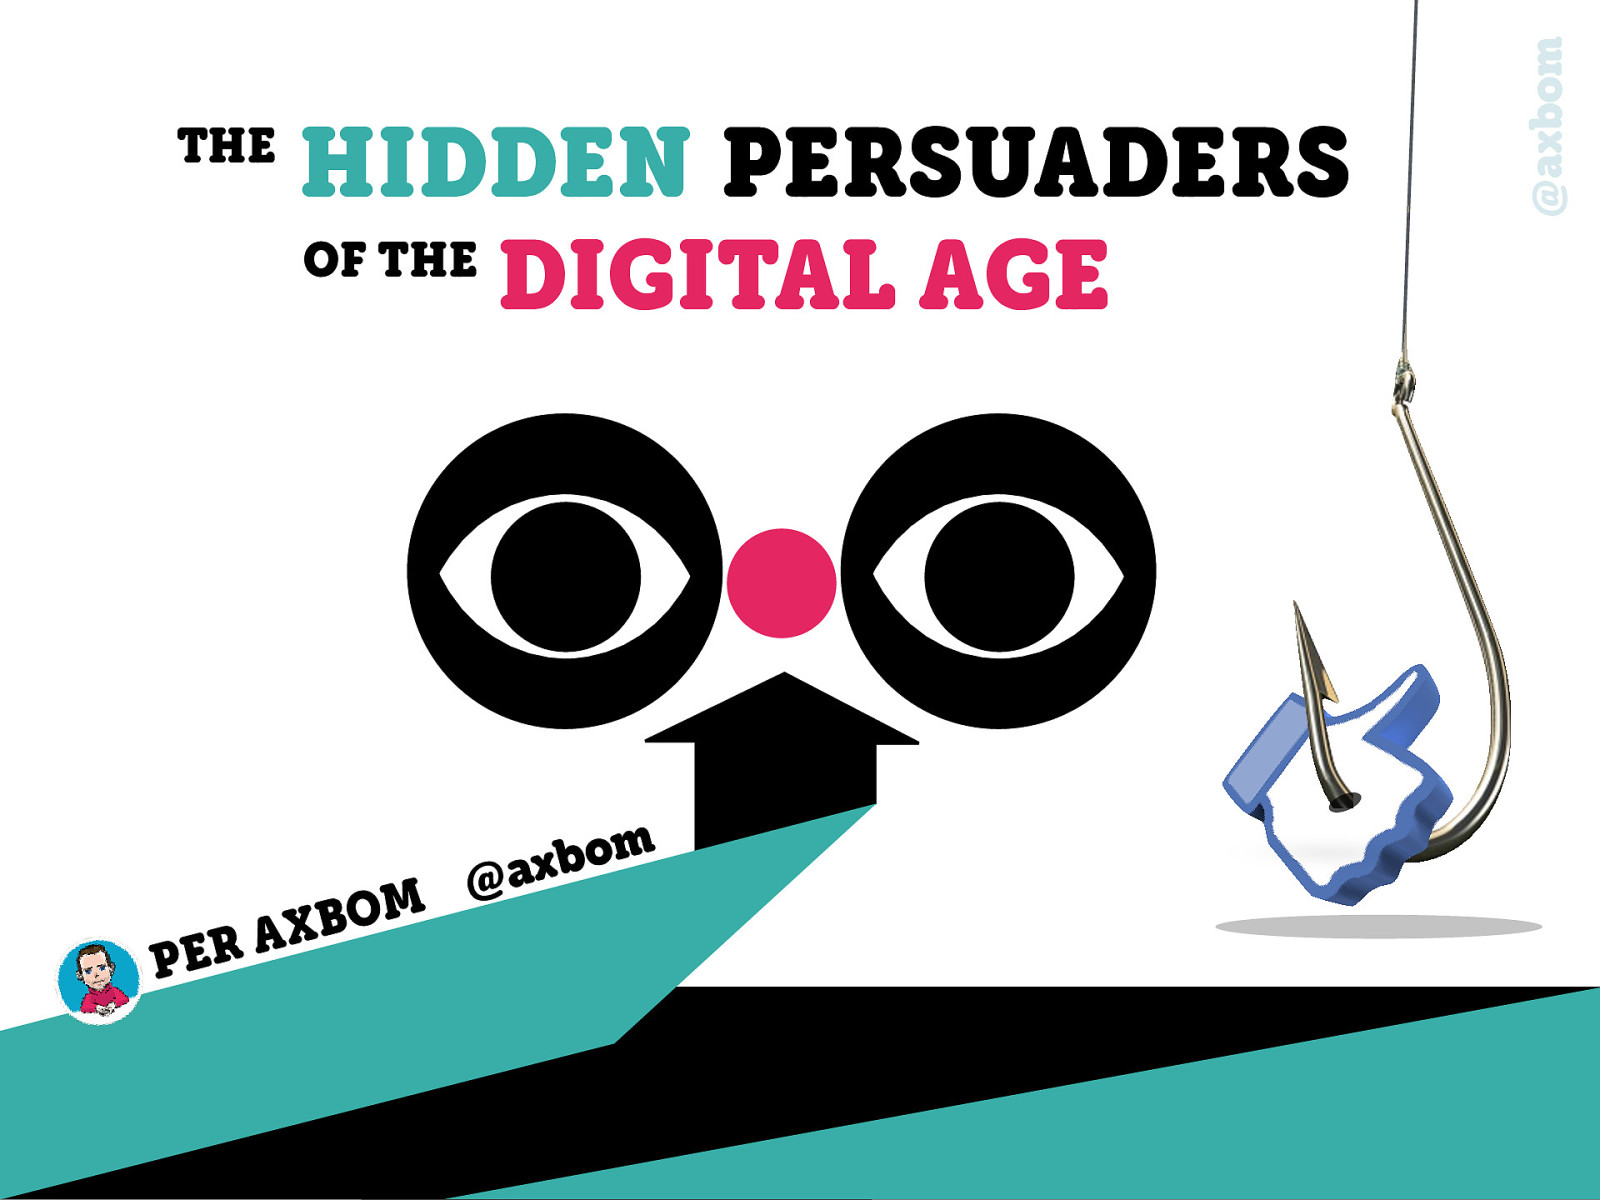 The Hidden Persuaders of the Digital Age